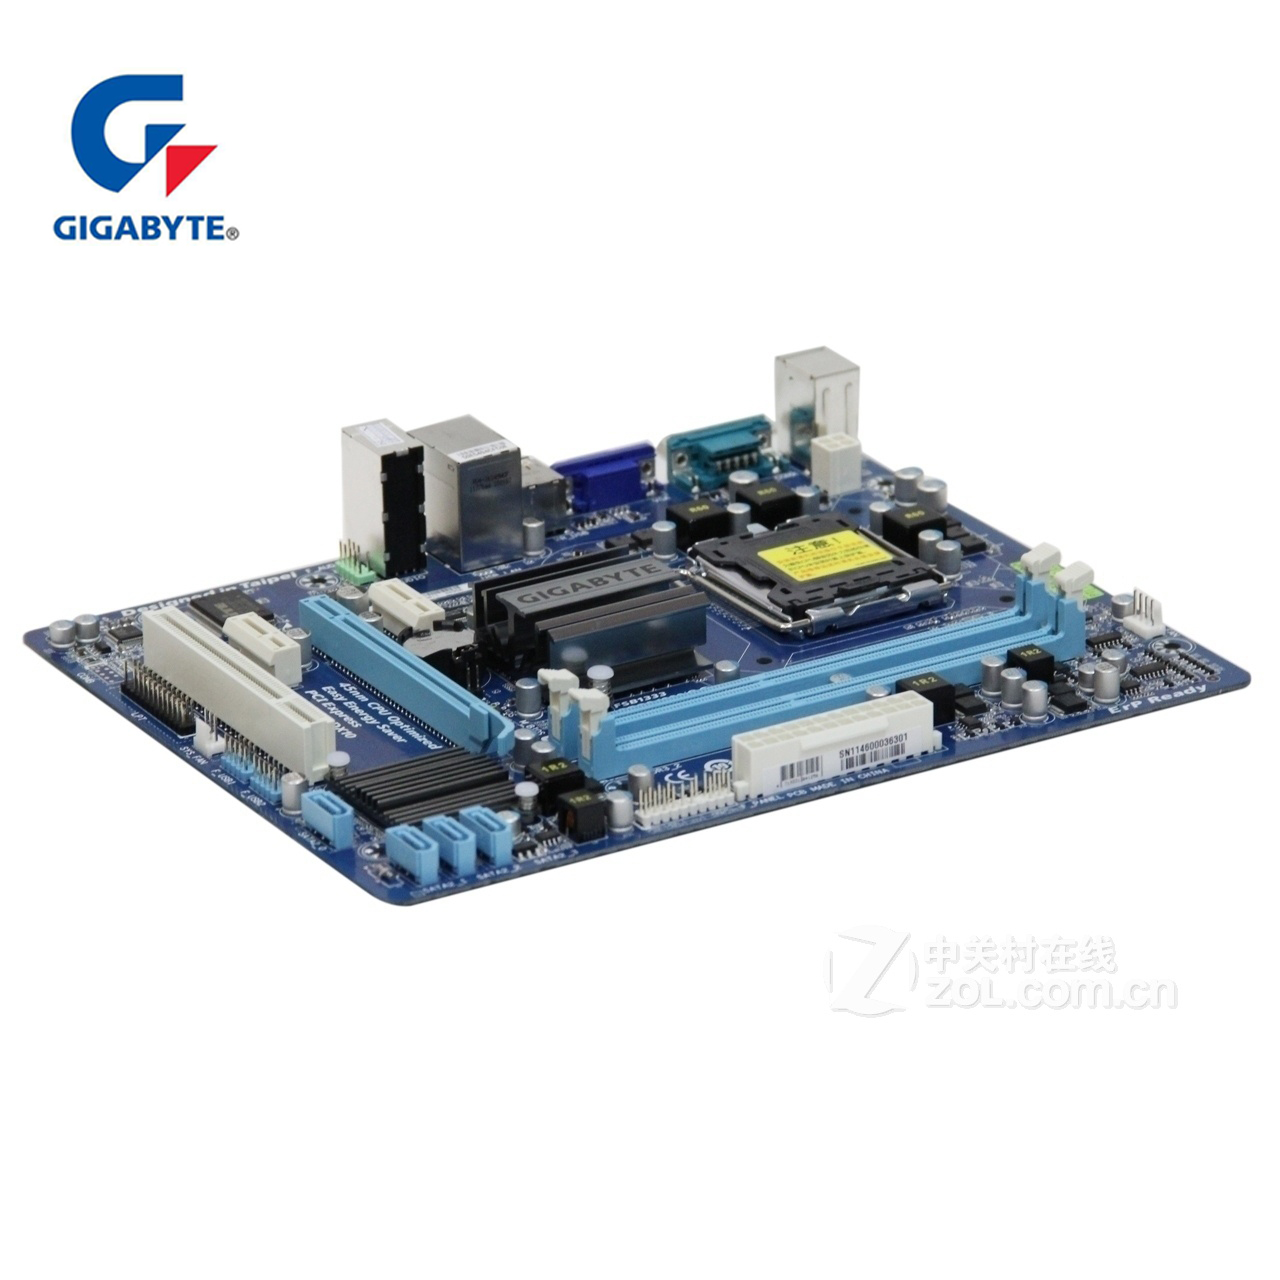 100% Gigabyte GA-G41MT-S2P Motherboard LGA 775 DDR3 USB2.0 Desktop Mainboard For Core 2 For Intel G41 D3H DDR3 G41MT S2 P Used